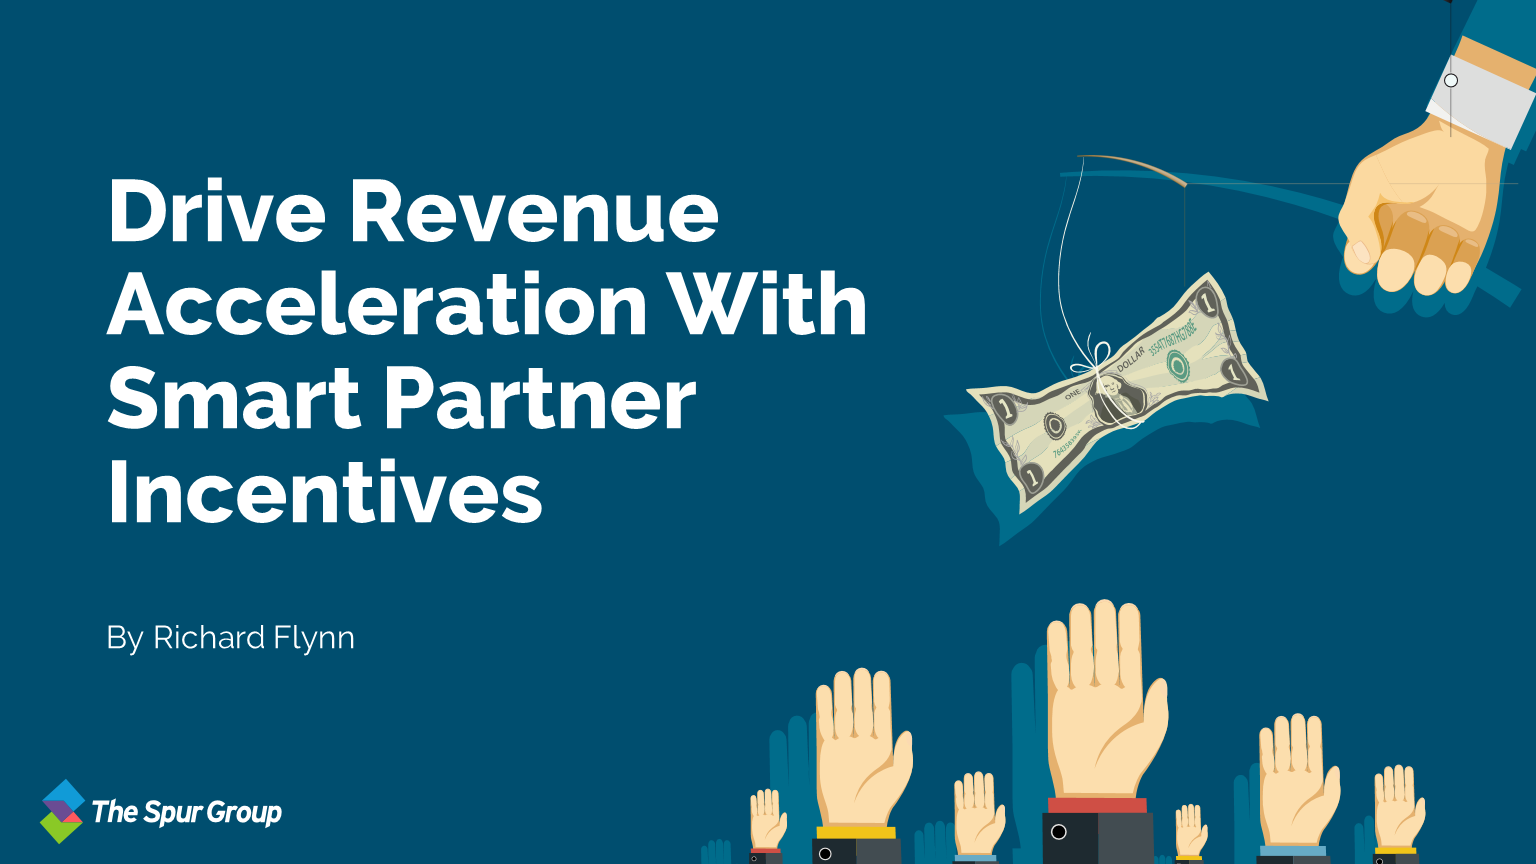 Drive Revenue Acceleration with Smart Partner Incentives Featured Image